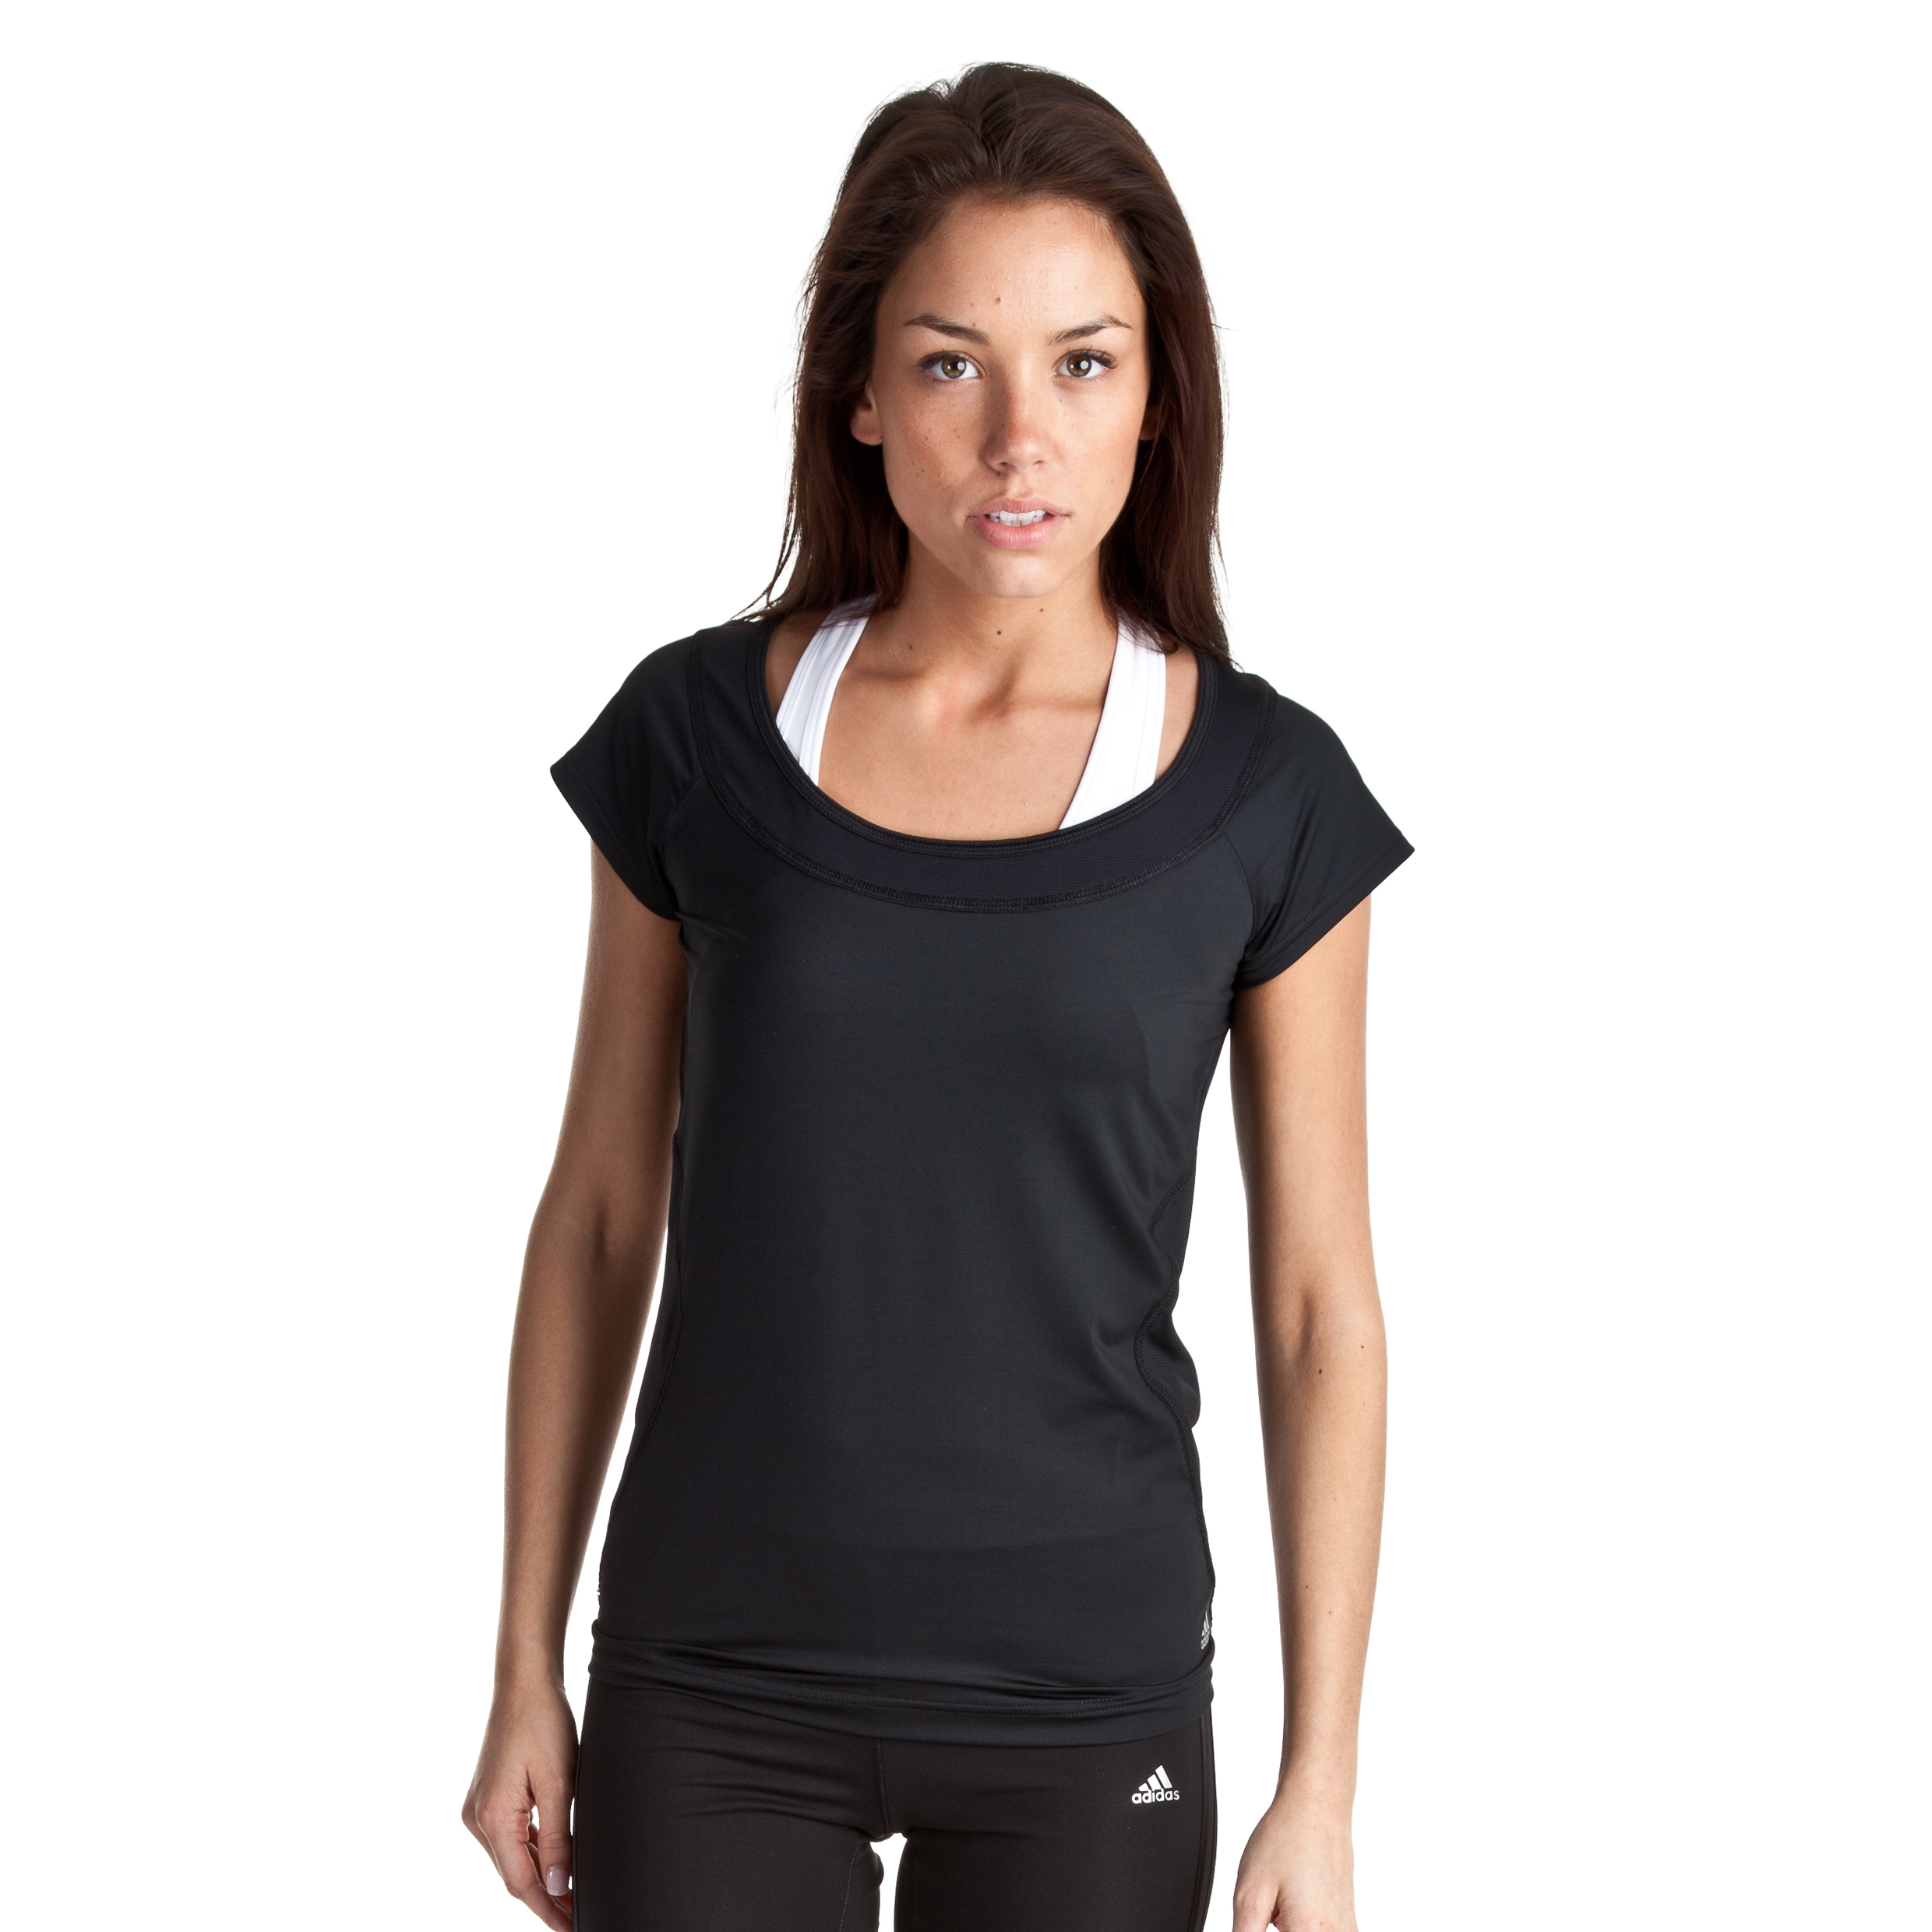 Adidas Studio Power Core Tee - Black - Womens